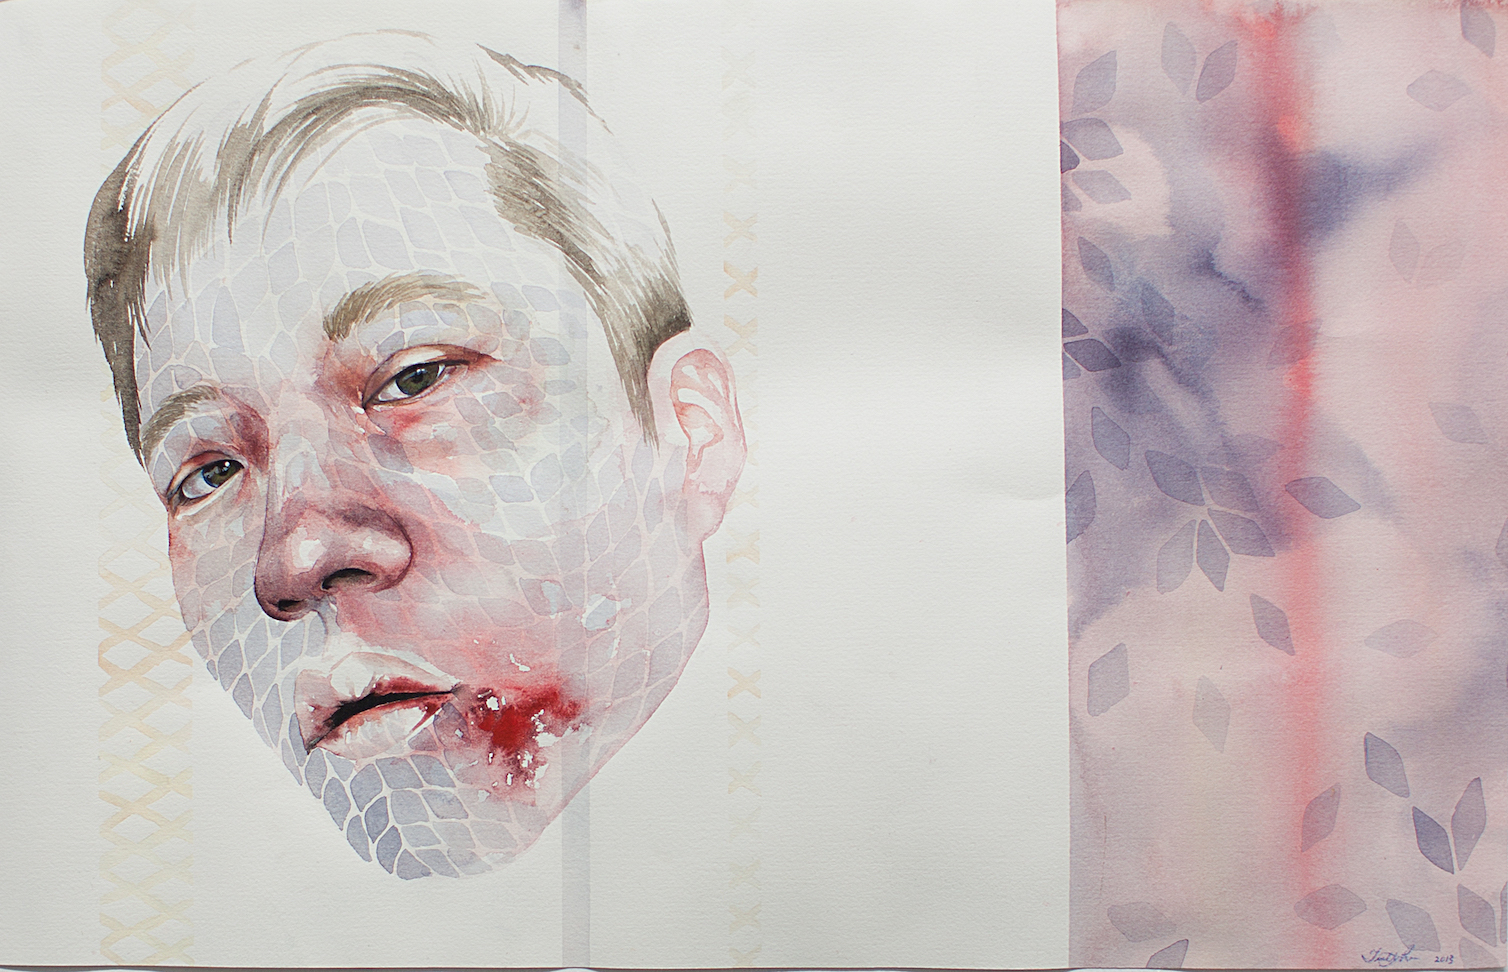 Self Portrait with busted lip (Panic) (2013); courtesy of the artist and  Sabrina Amrani Gallery